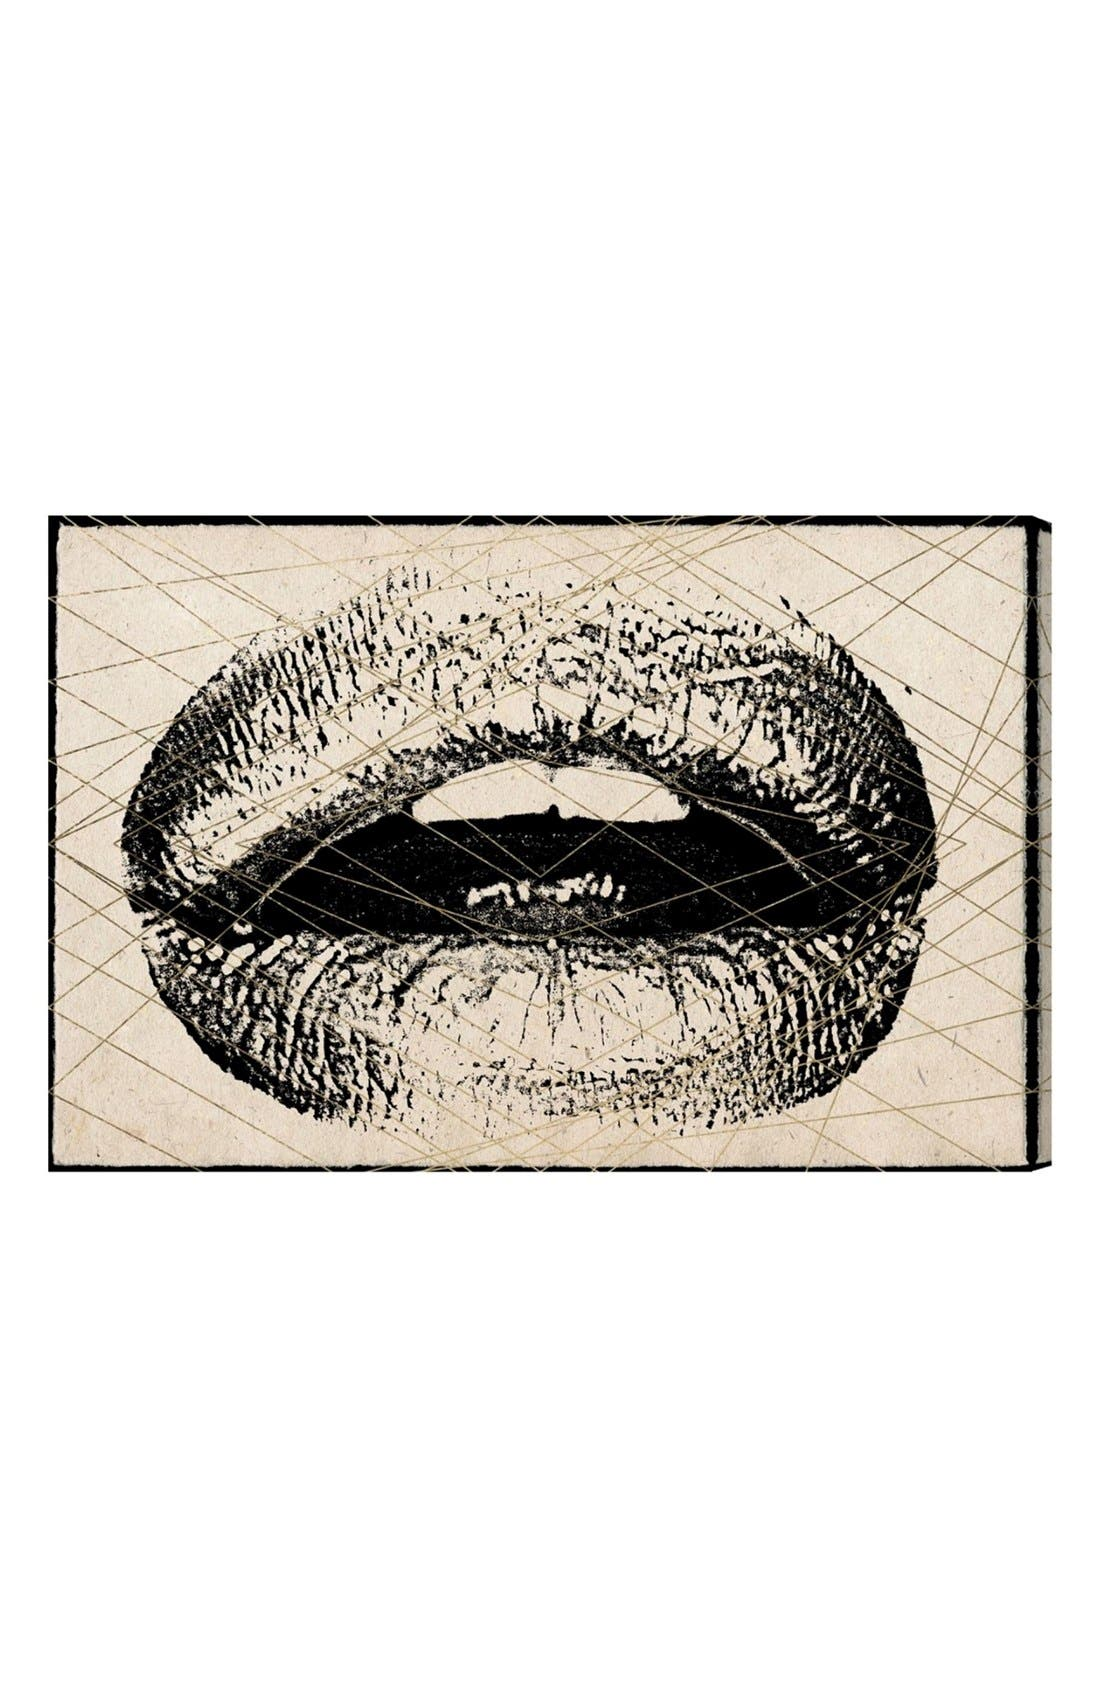 Alternate Image 1 Selected - Hatcher & Ethan 'Lips' Canvas Print